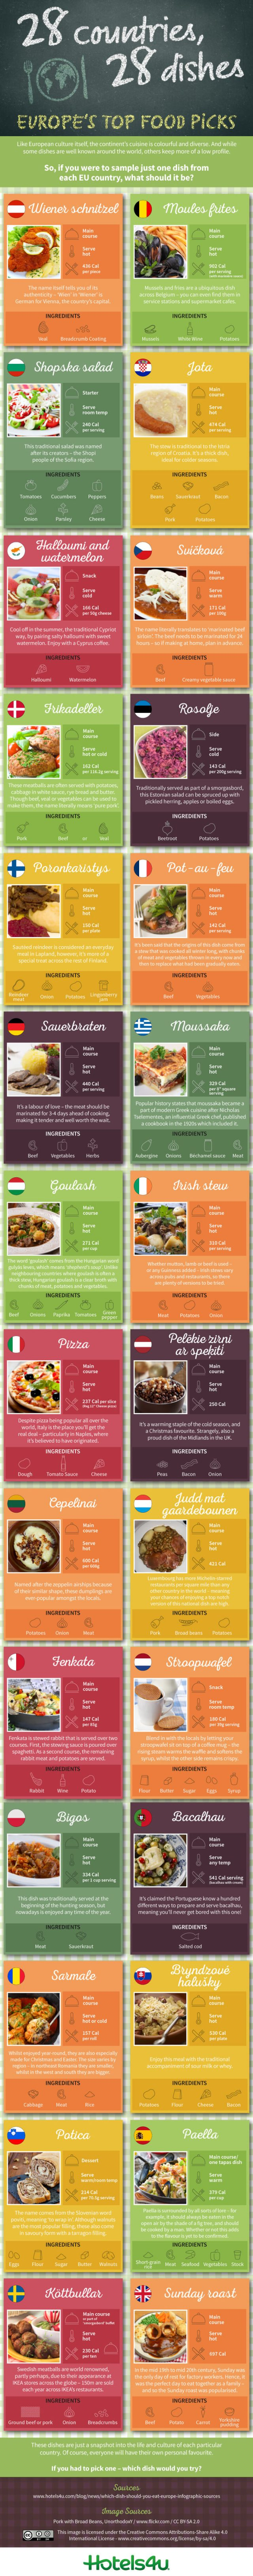 28countries28dishes-final